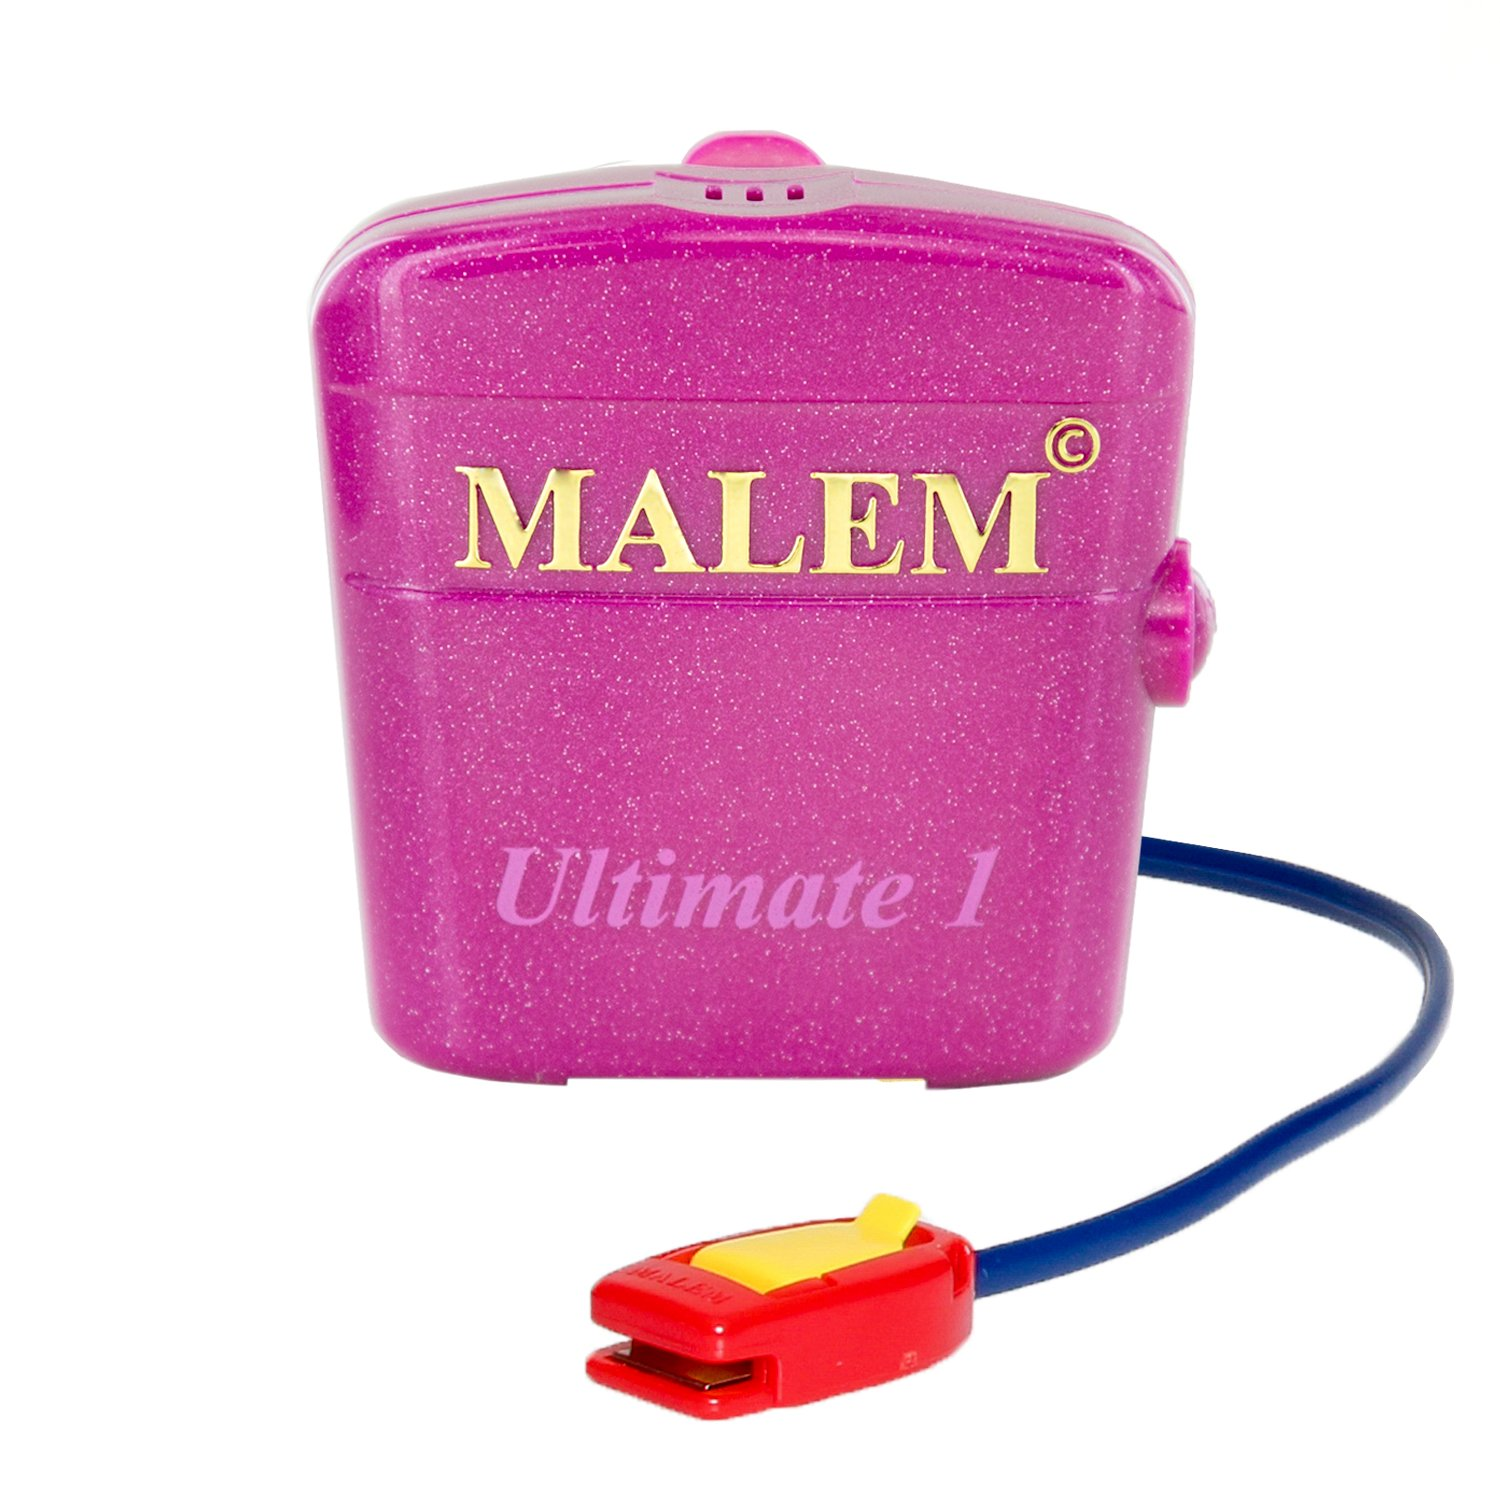 Malem Ultimate PRO Pink Bedwetting Alarm for Girls & Boys with Loud Sound and Strong Vibration to Stop Bed Wetting